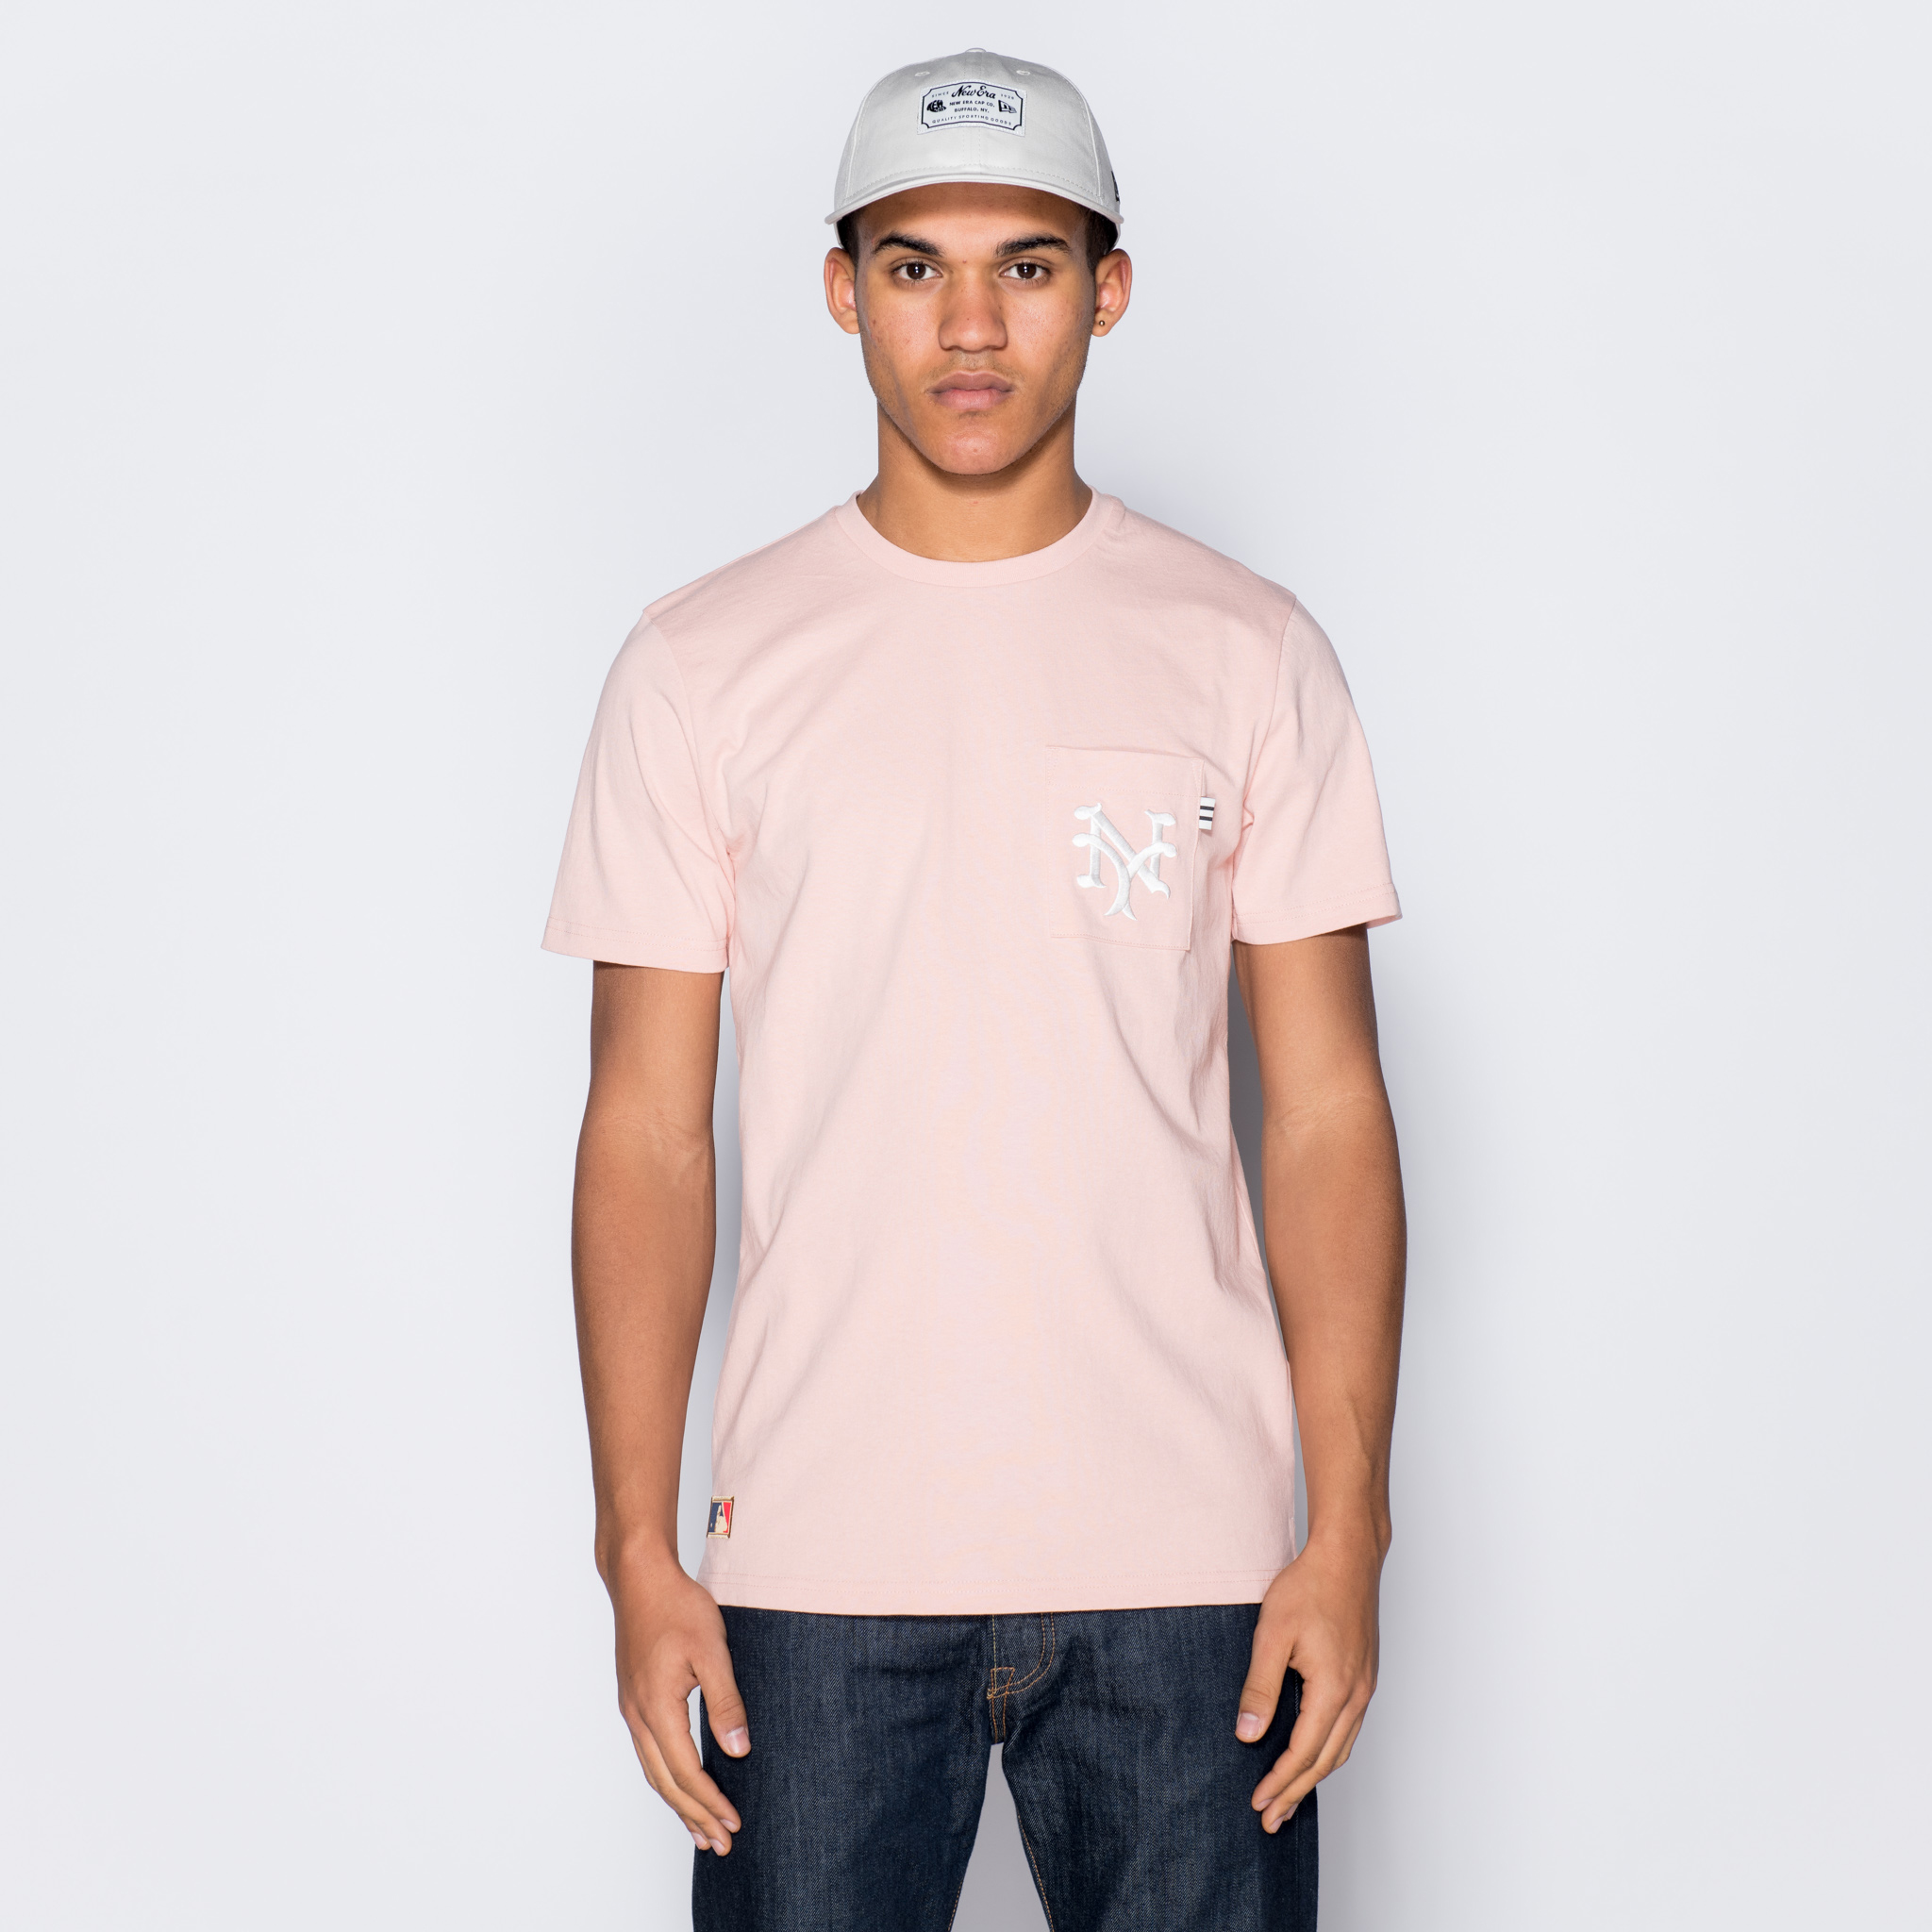 New York Giants Vintage Pocket Logo Pink Tee